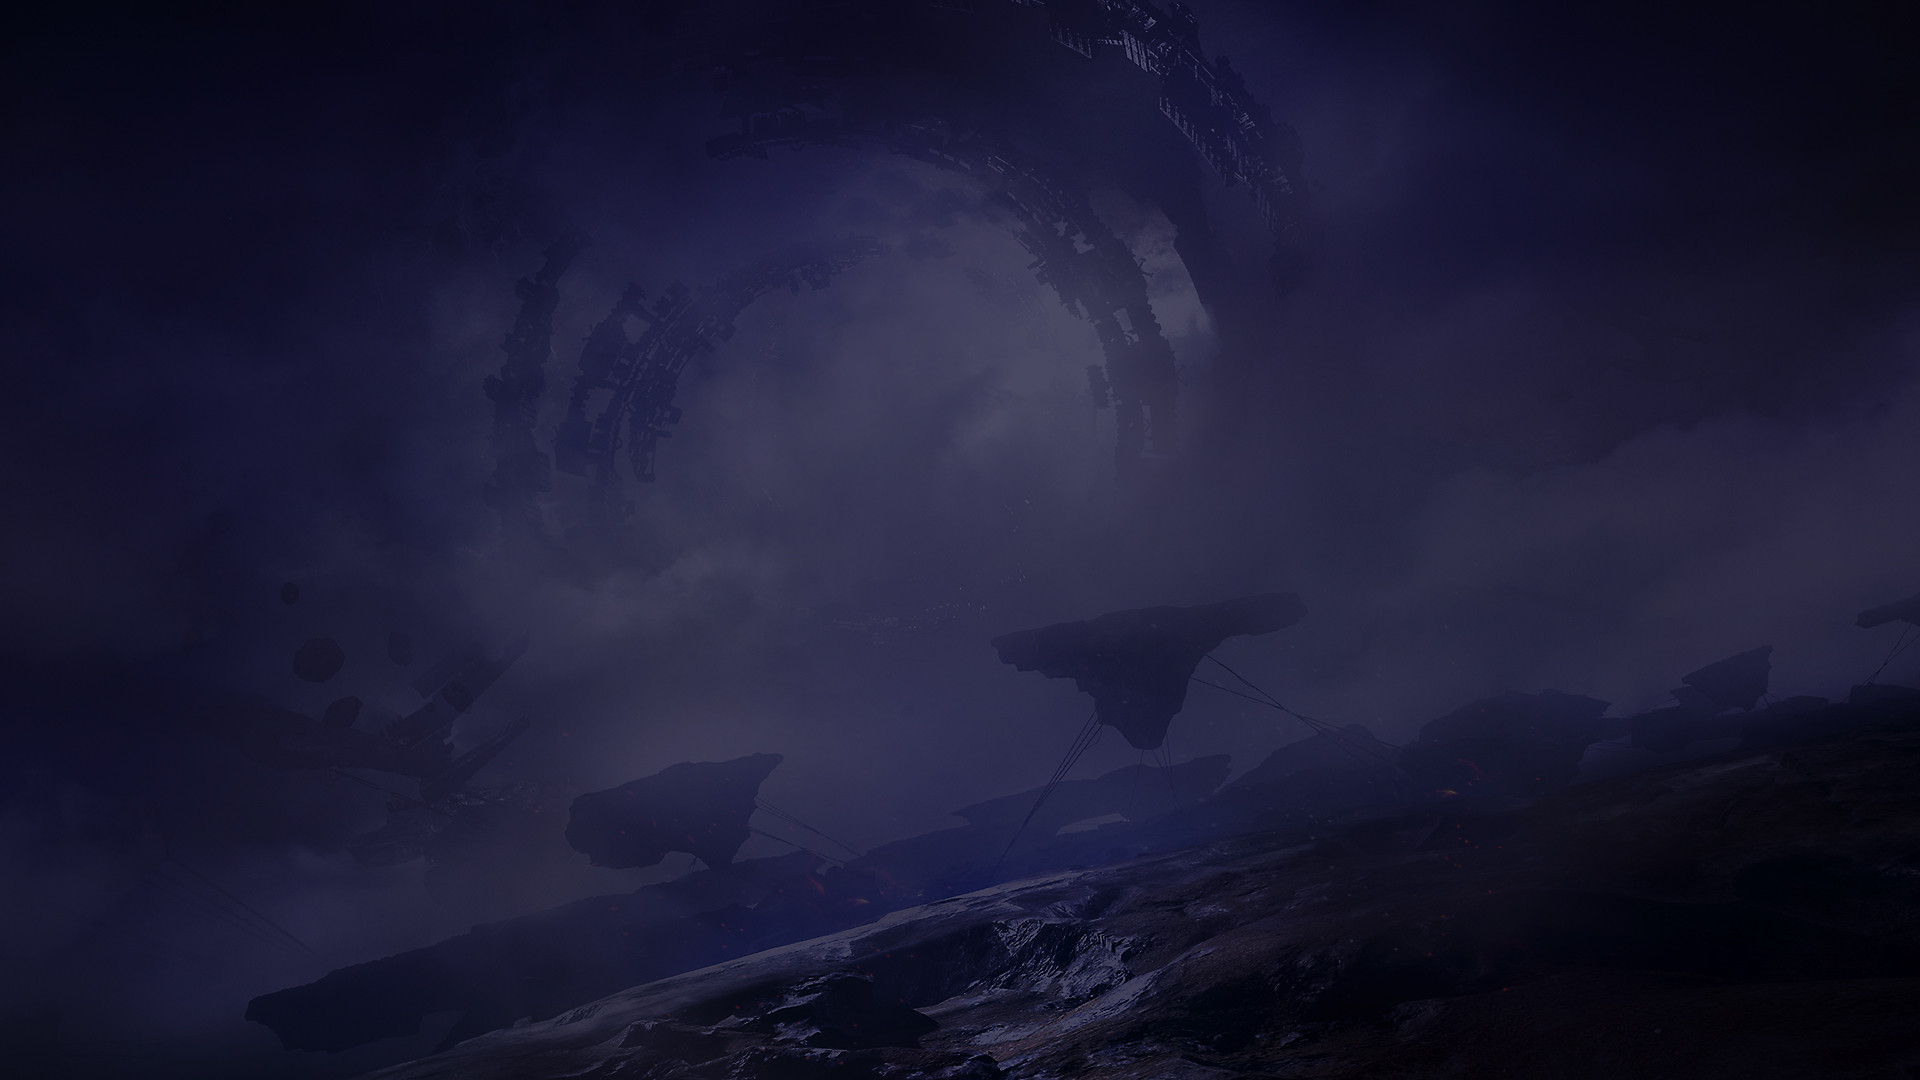 Destiny 2 Purple Night Background Image